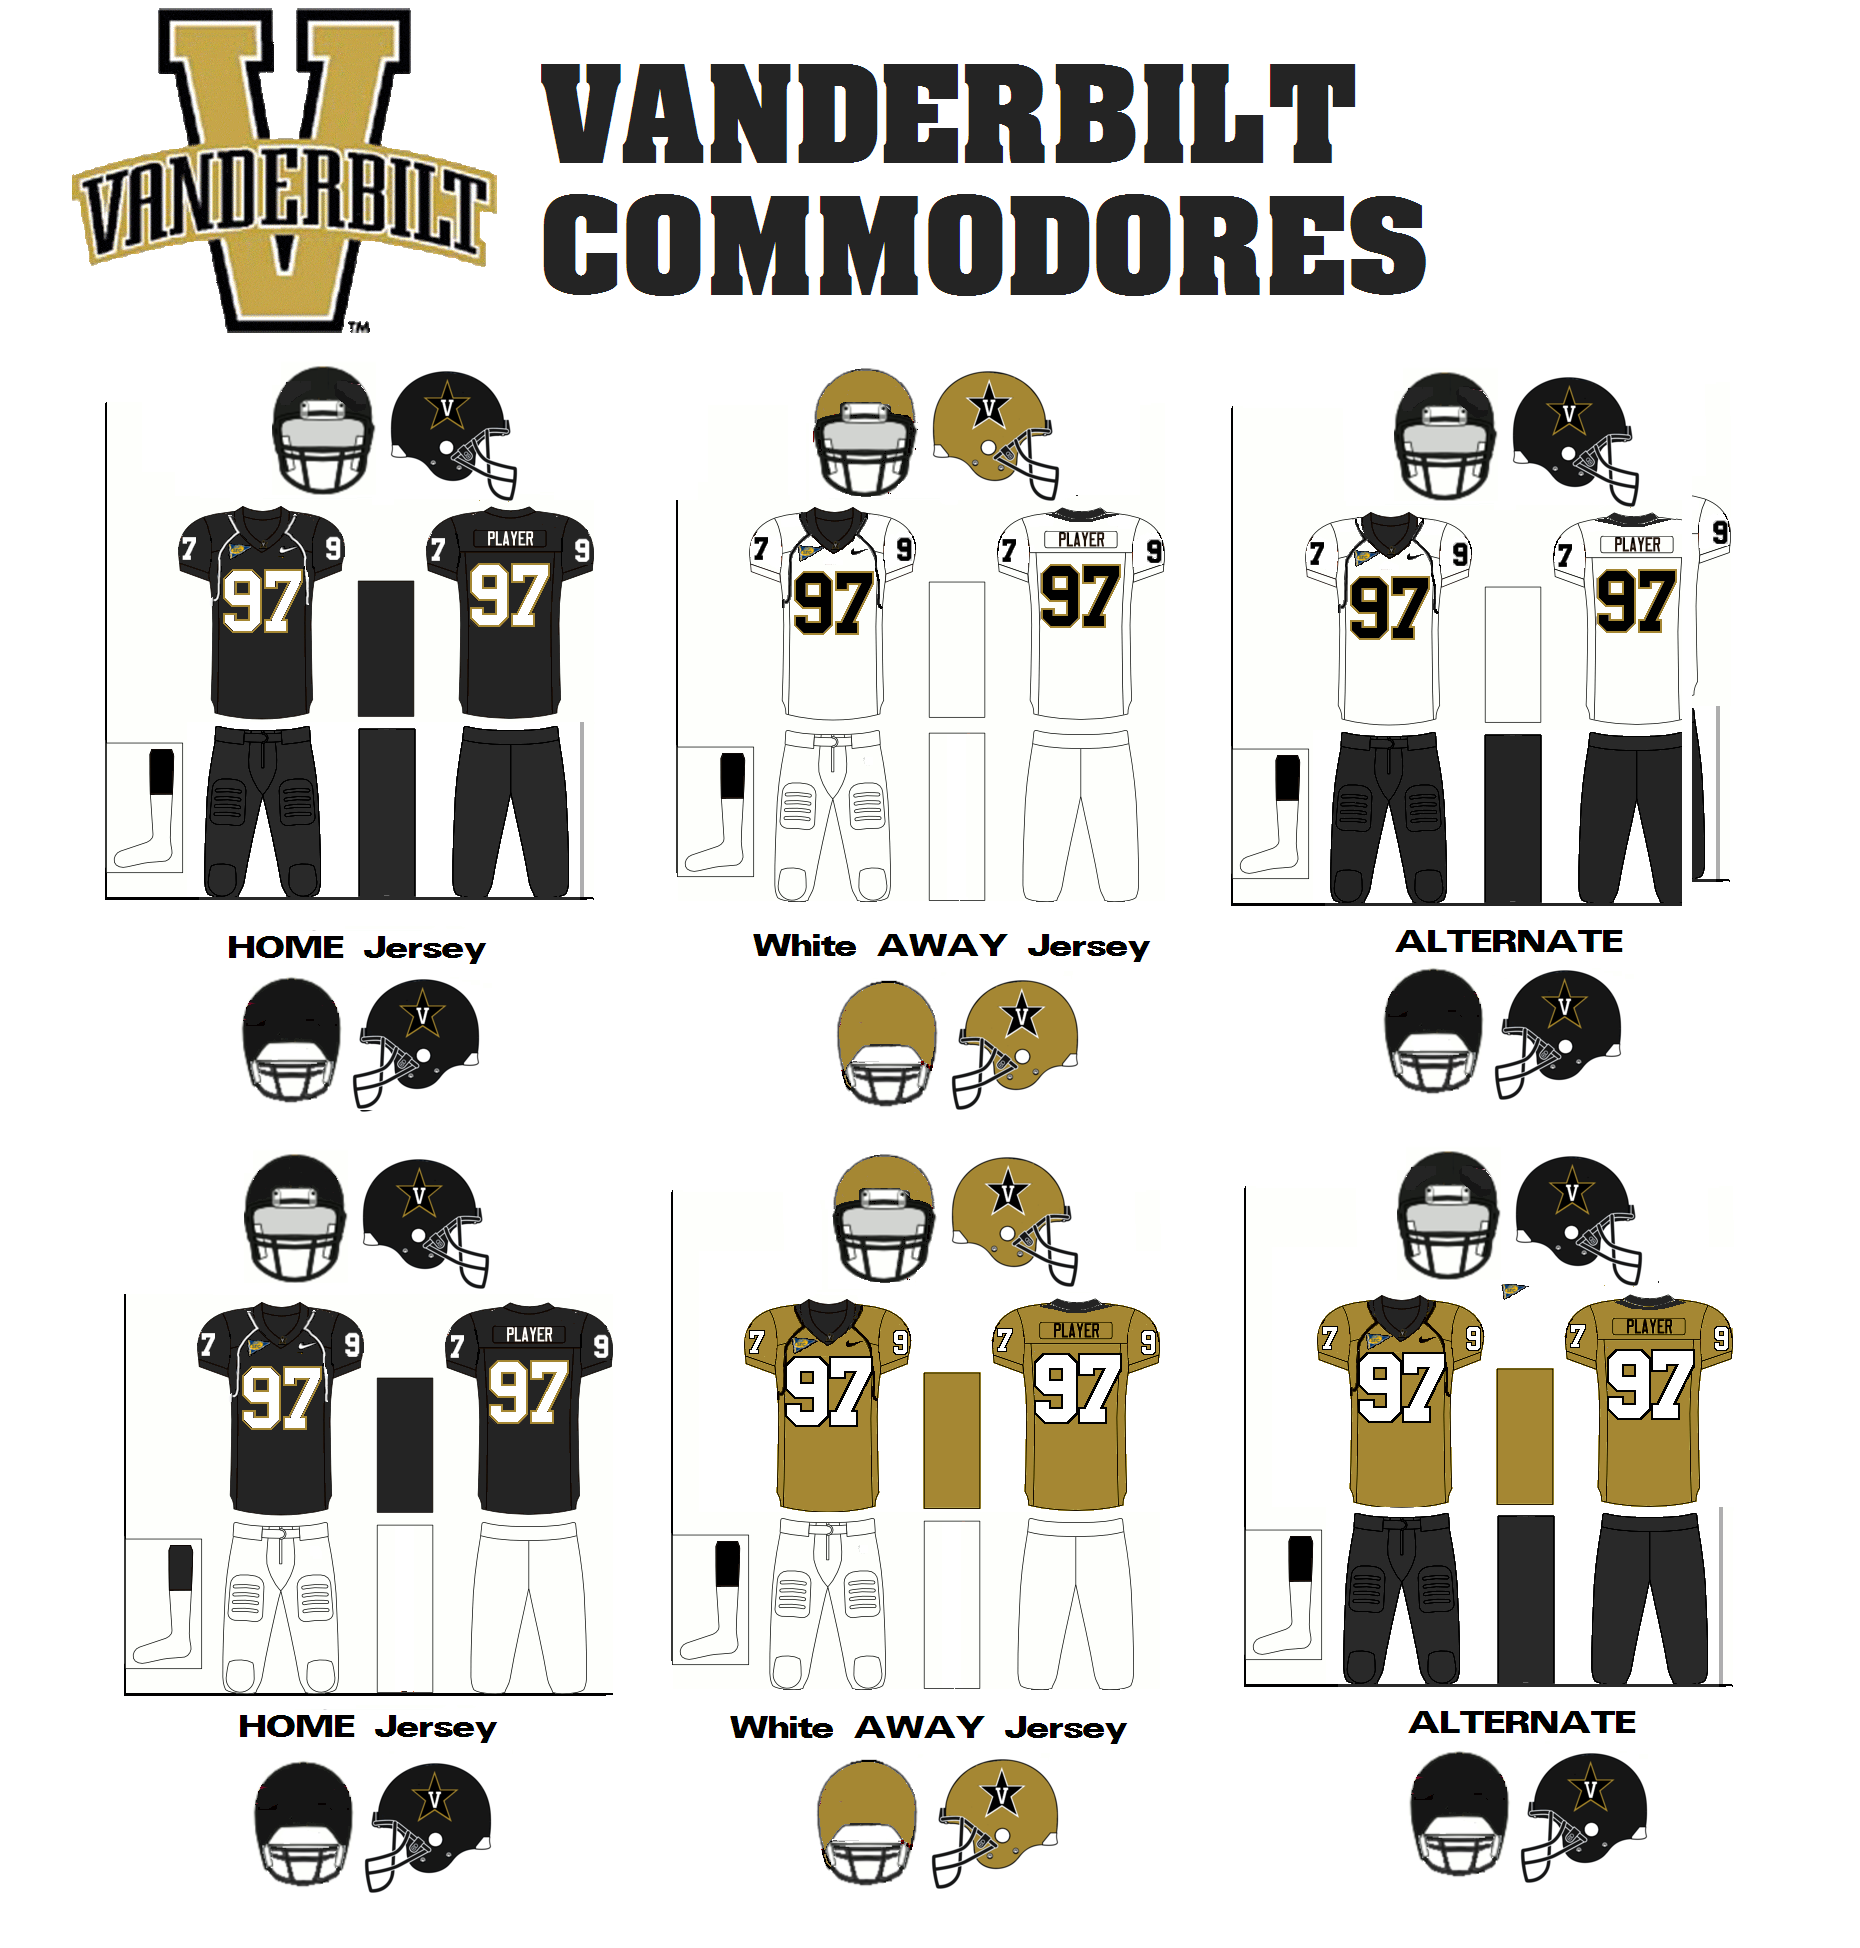 13fcbdfd7a4 Vanderbilt Commodores | American Football Wiki | FANDOM powered by Wikia